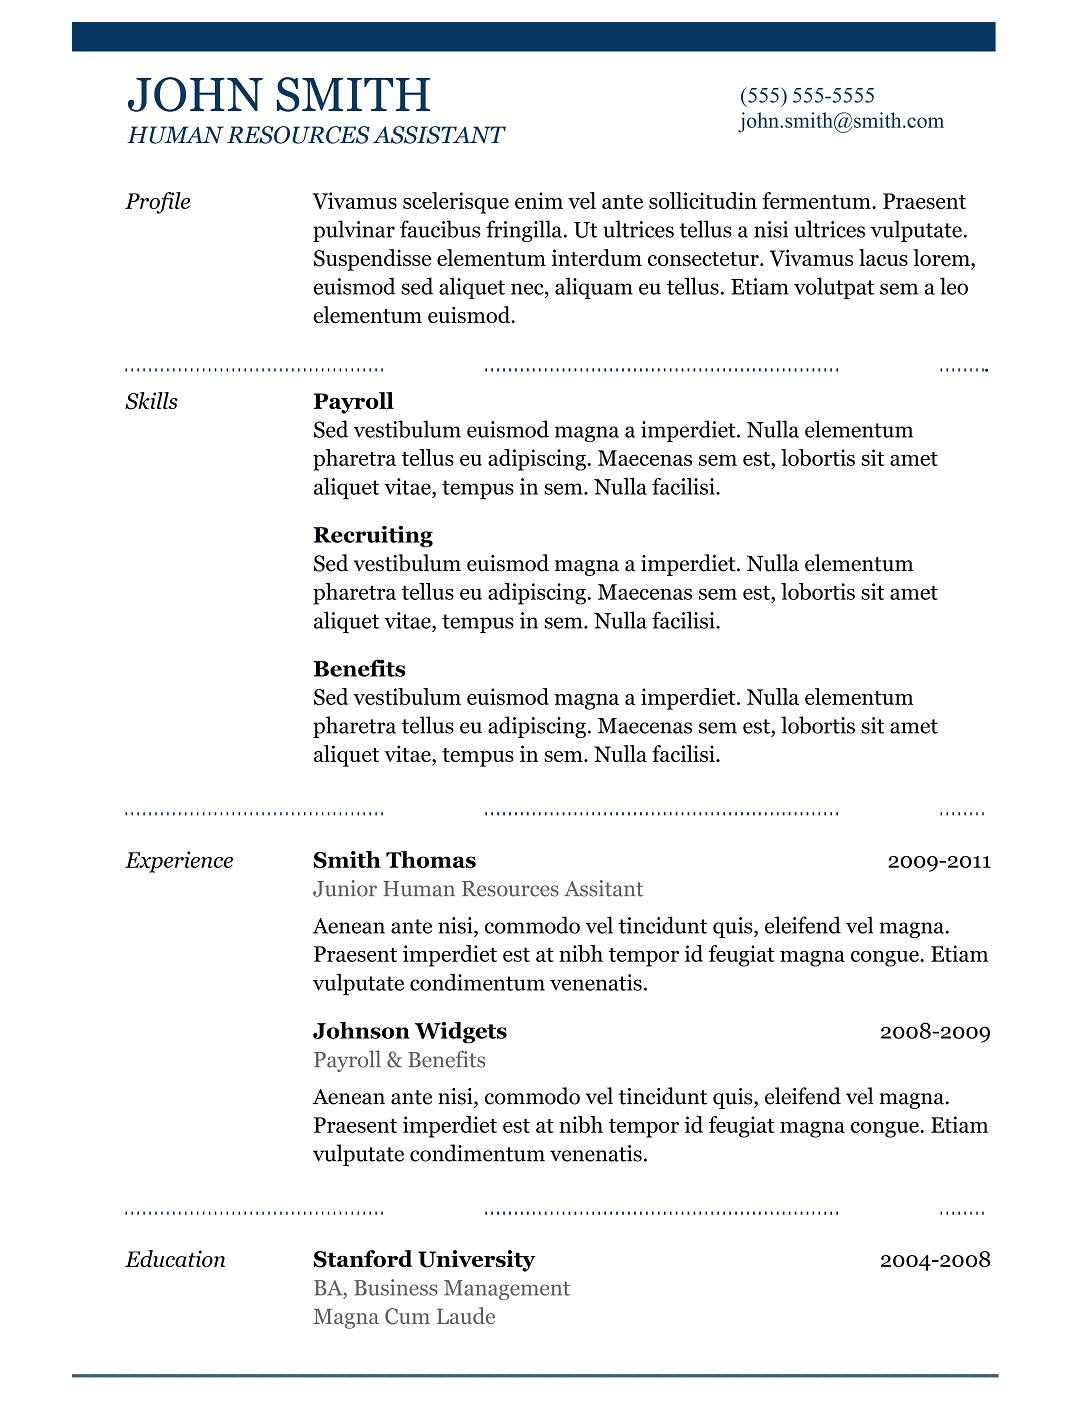 Resume Template To Download Best Resume Templates For Freshers Best